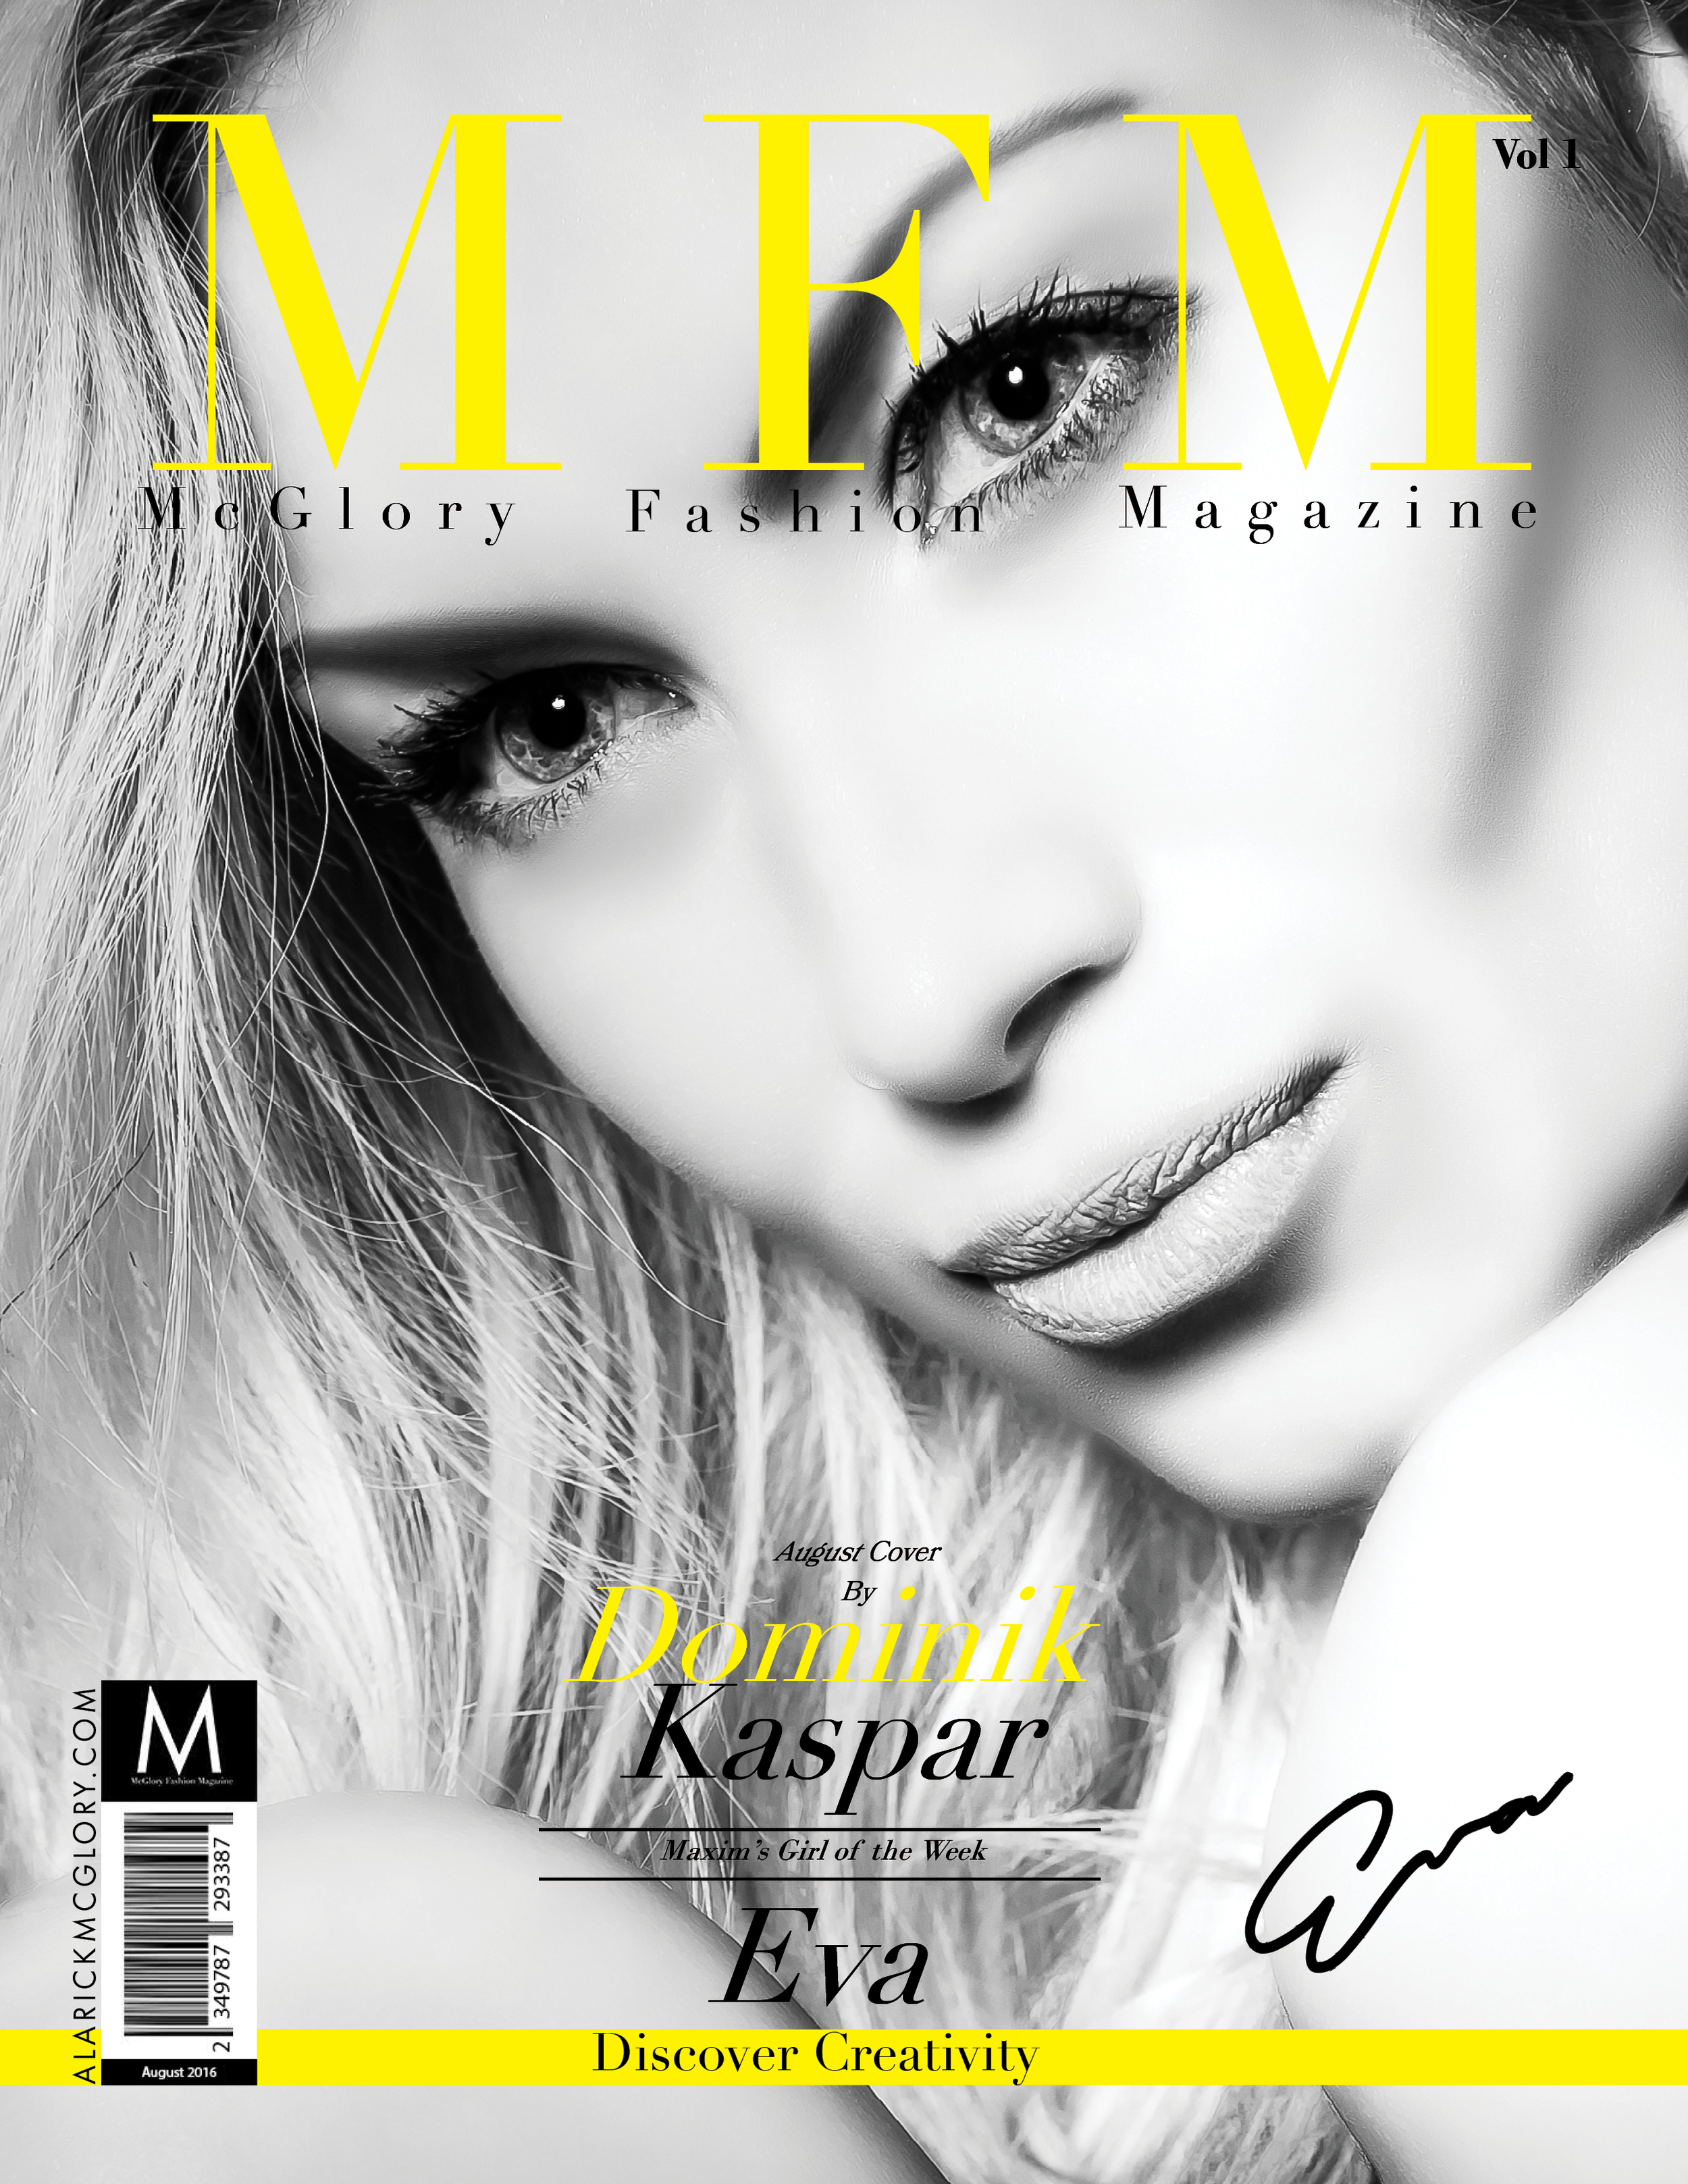 MFM first issue 3-edited 106 Part 1 space 1-1-1-1 PDF VOL 1.png